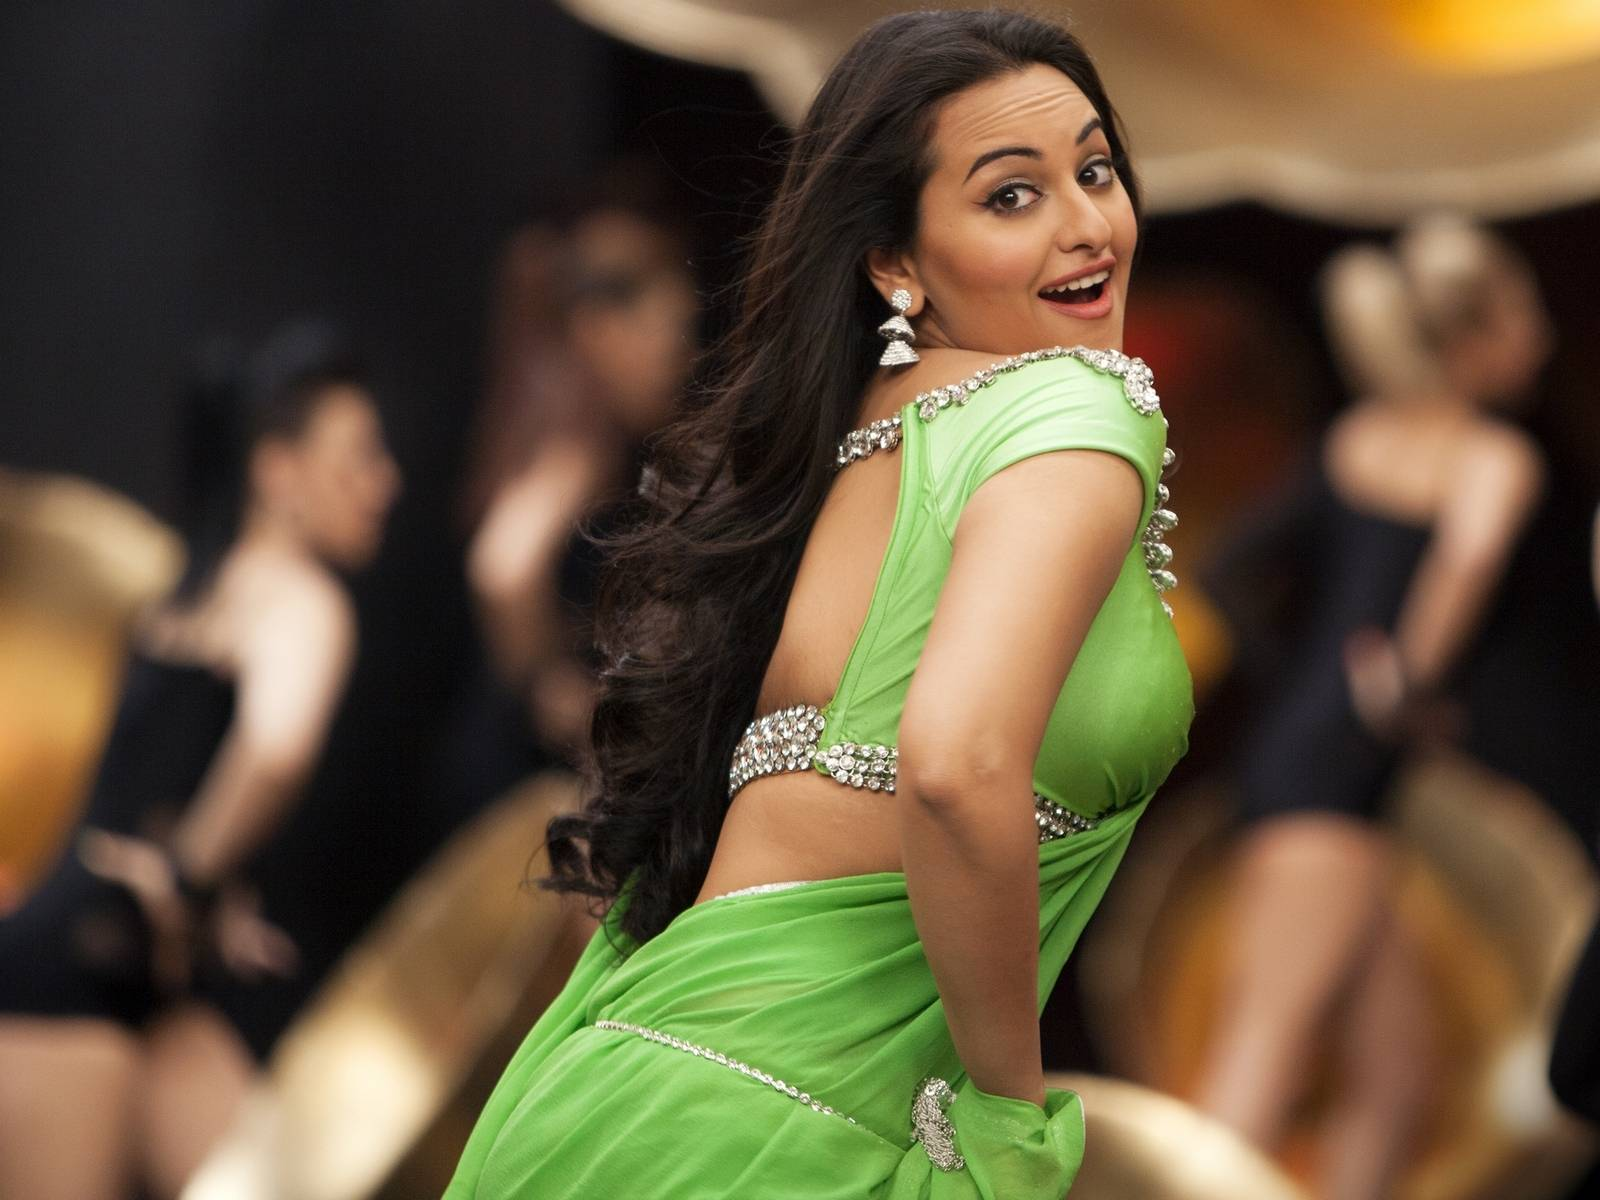 Have Hot Scenes From The Movies Like R Rajkumar And Rowdy Rathore In Hot Navel Saree Download And Share Sonakshi Sinha S Most Hot Pics In Hot Saree